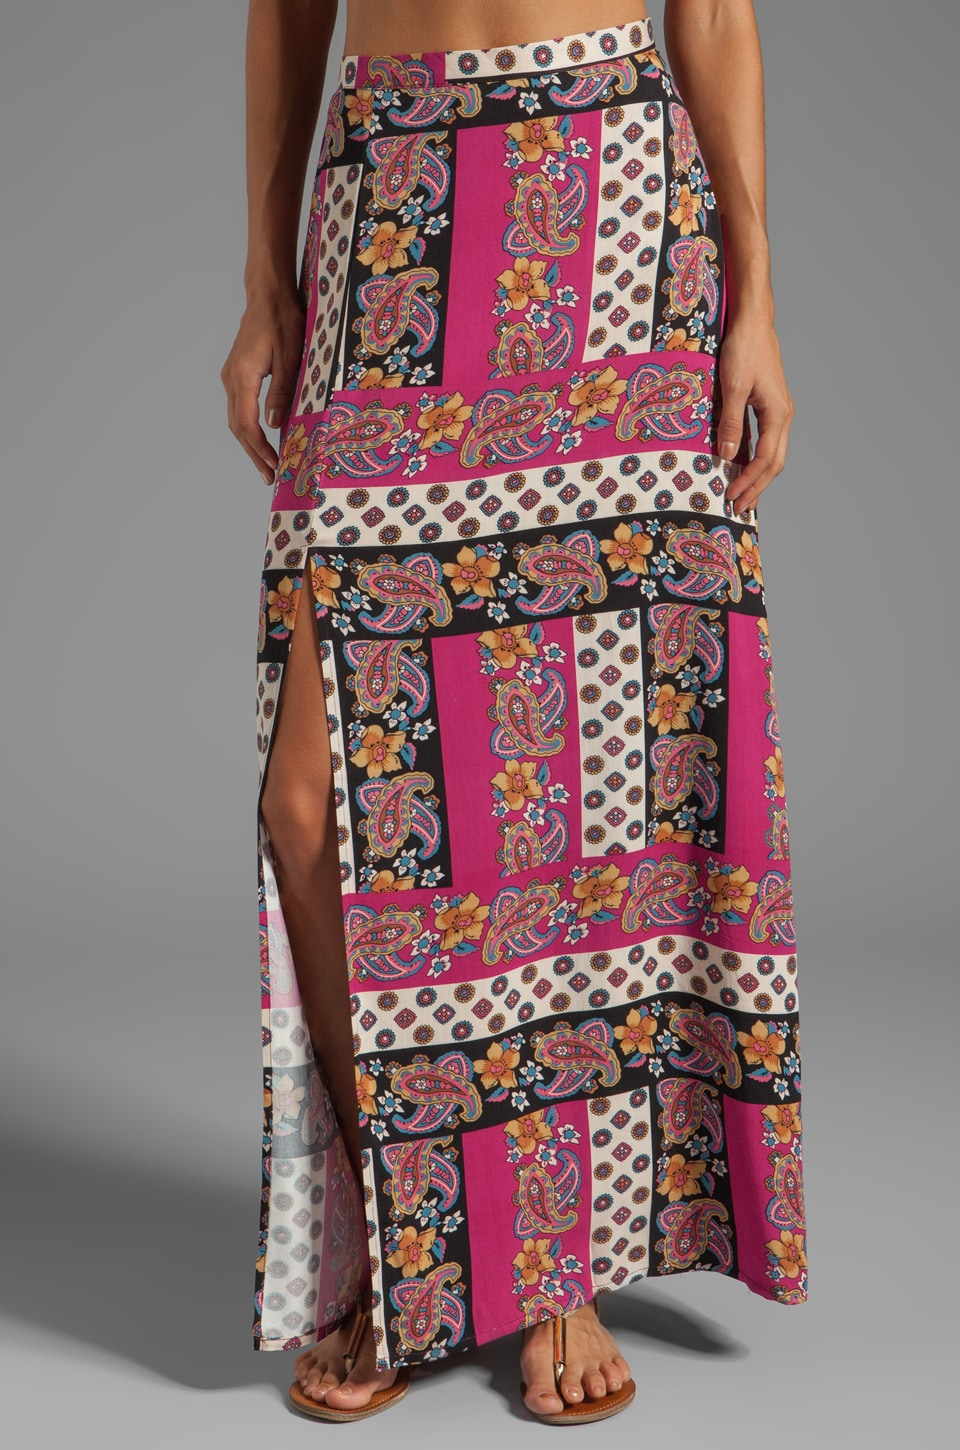 MINKPINK Princess of Persia Maxi Skirt with Slits in Multi